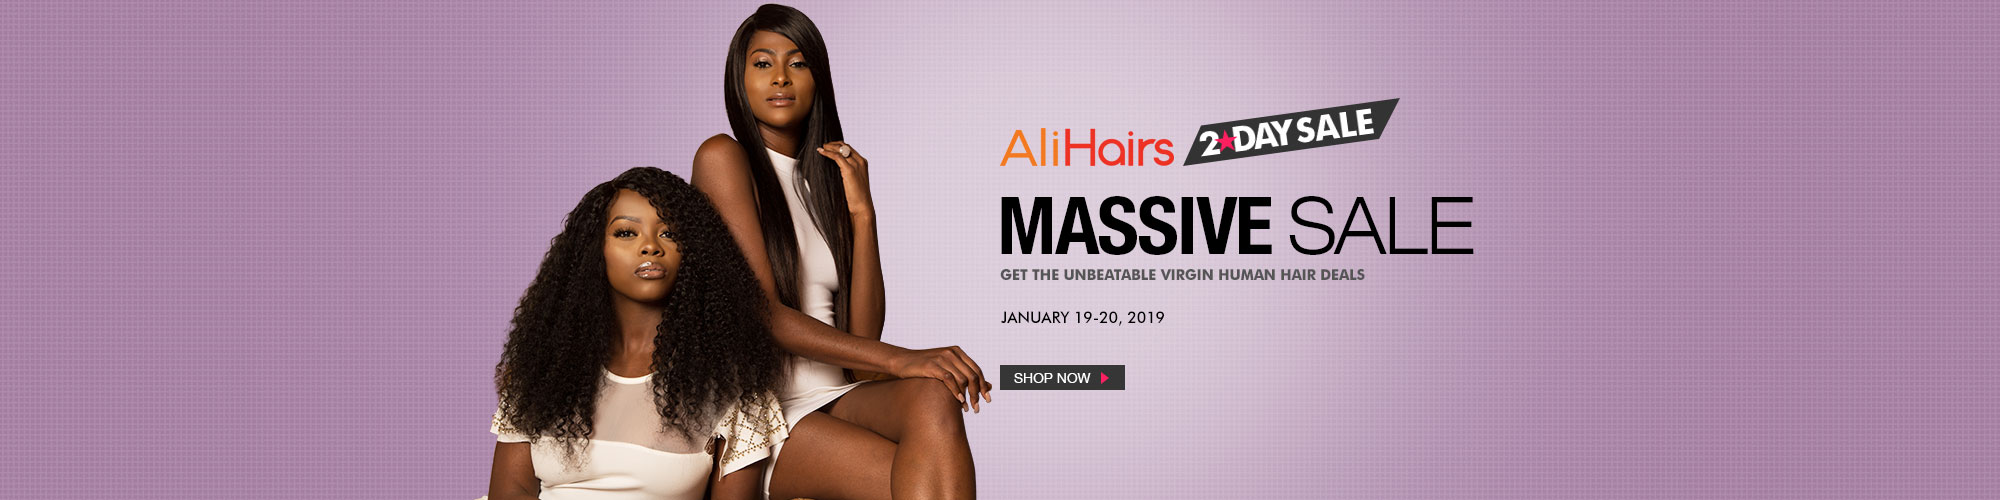 2-DAY MASSIVE SALE - ALIHAIRS